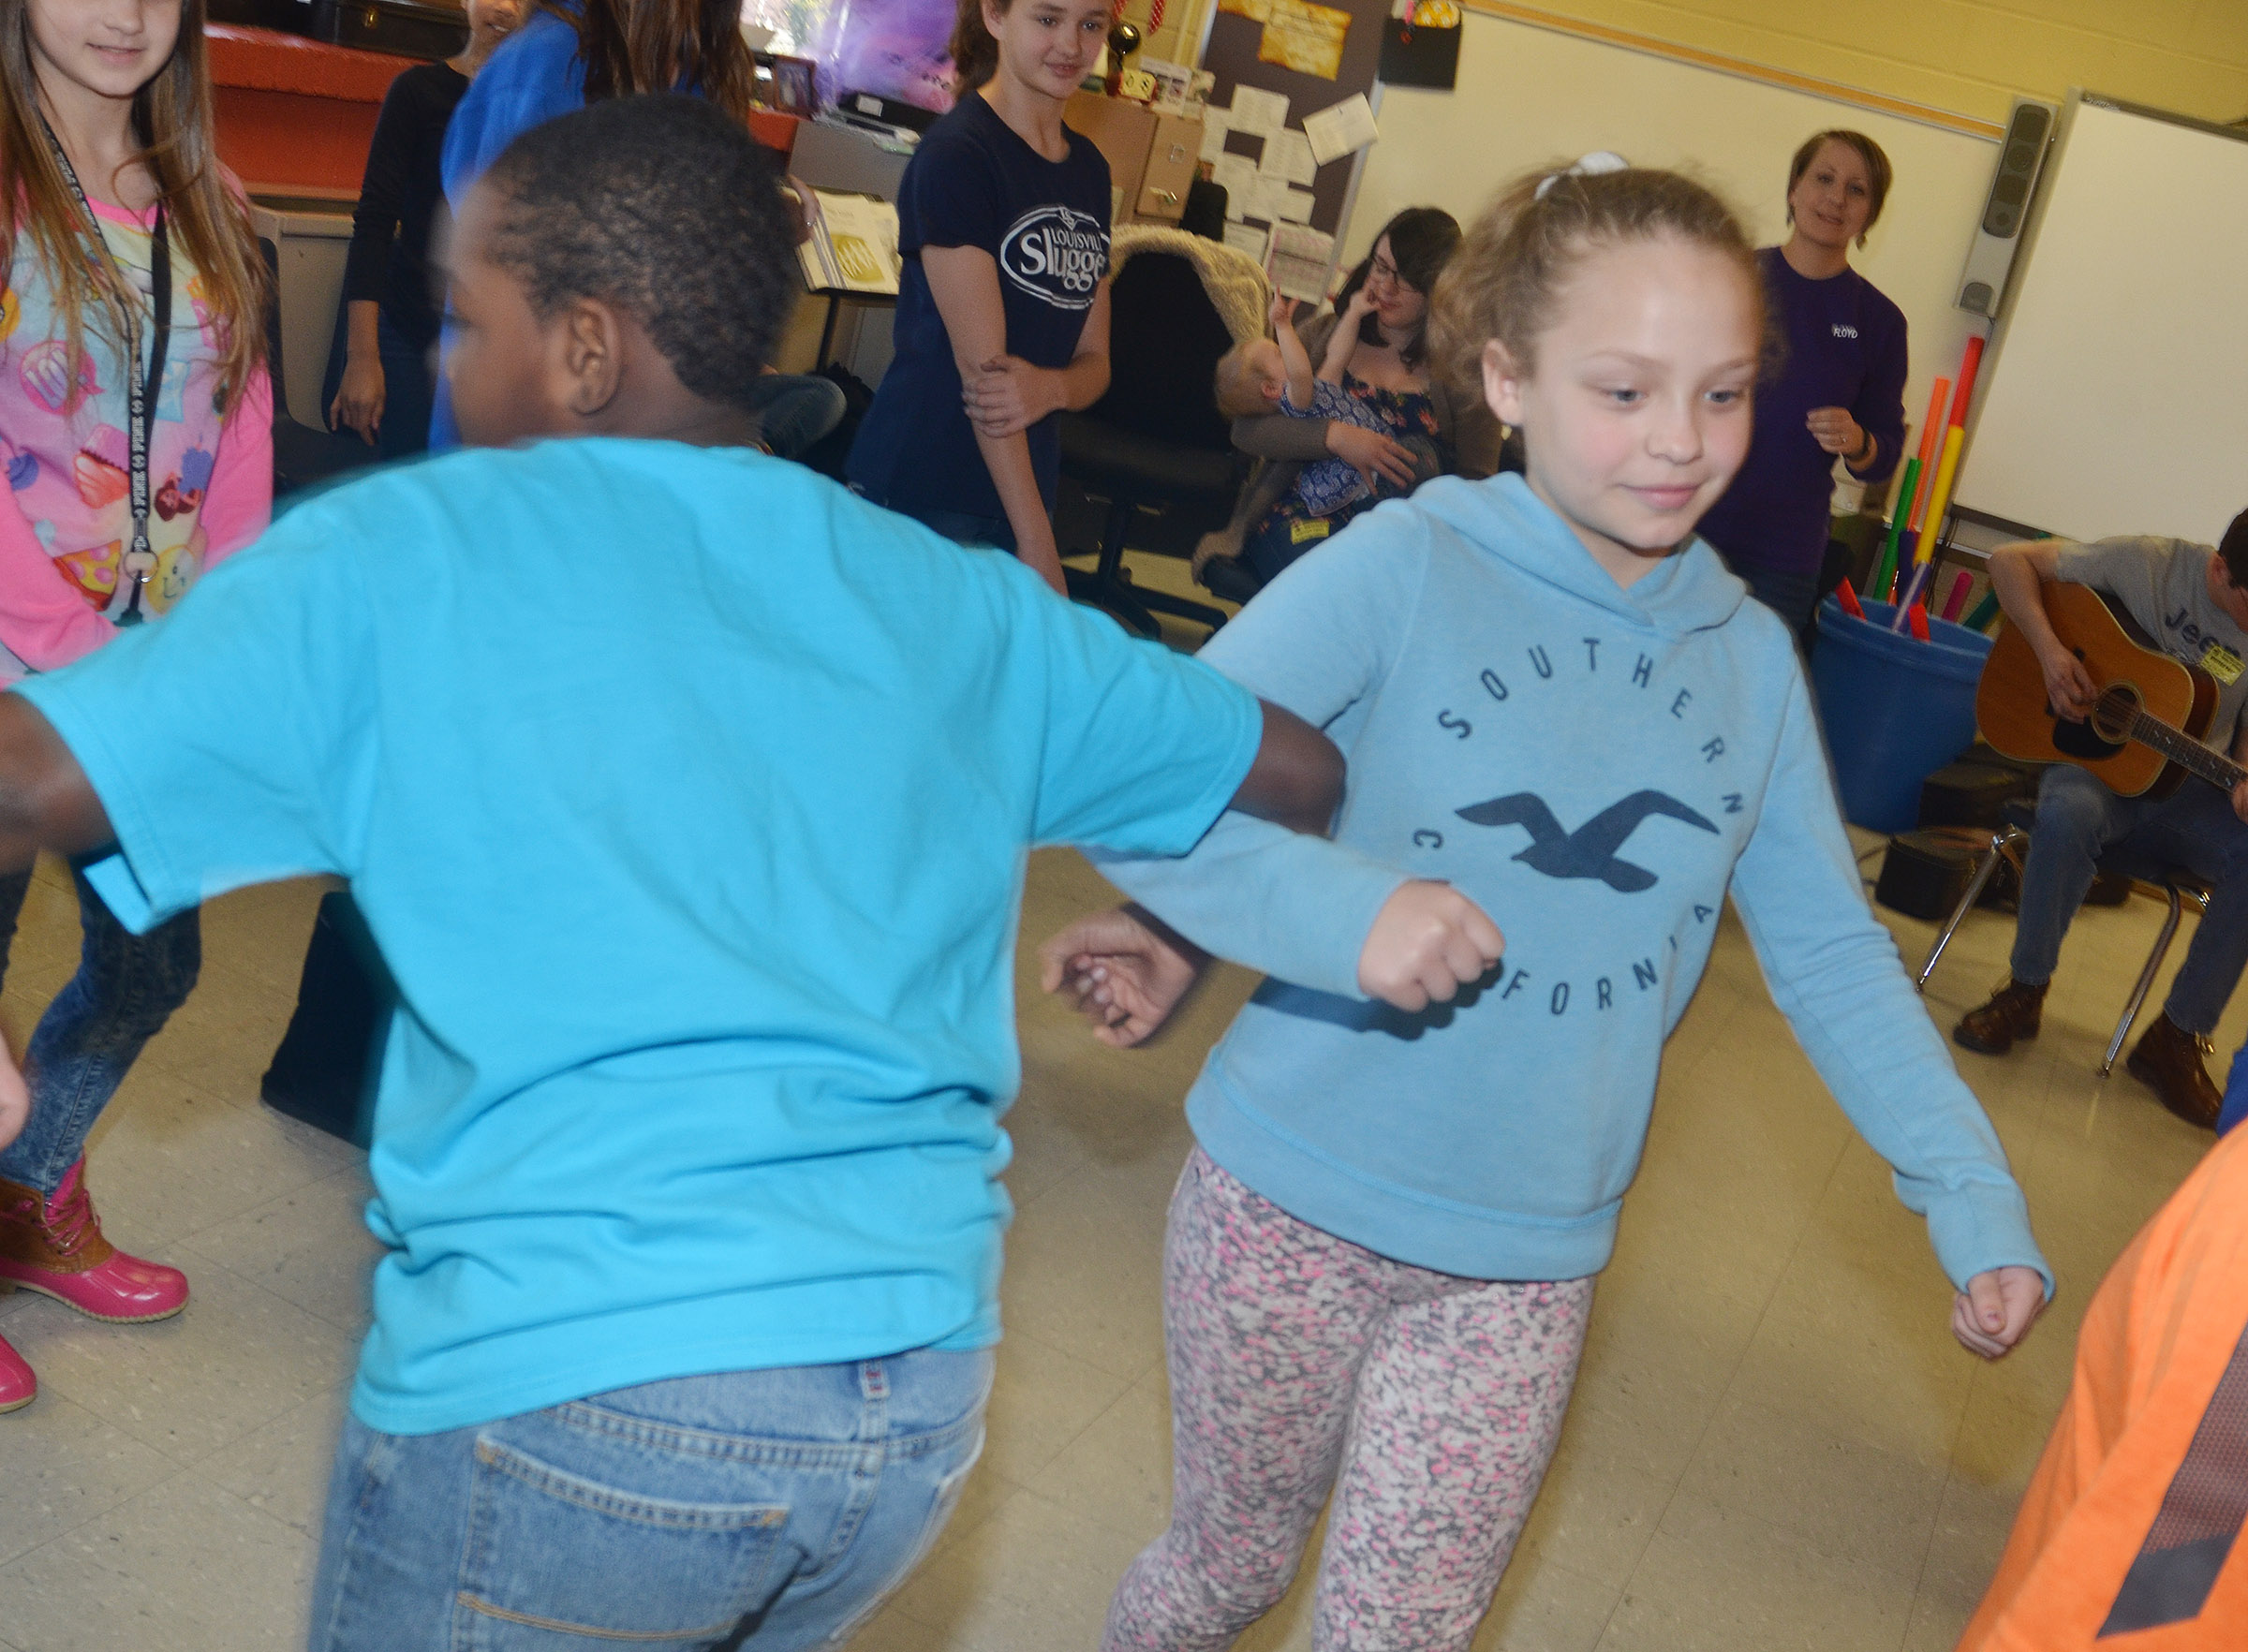 CMS fourth-graders Deason Smith, at left, and Deanna Reardon dance.